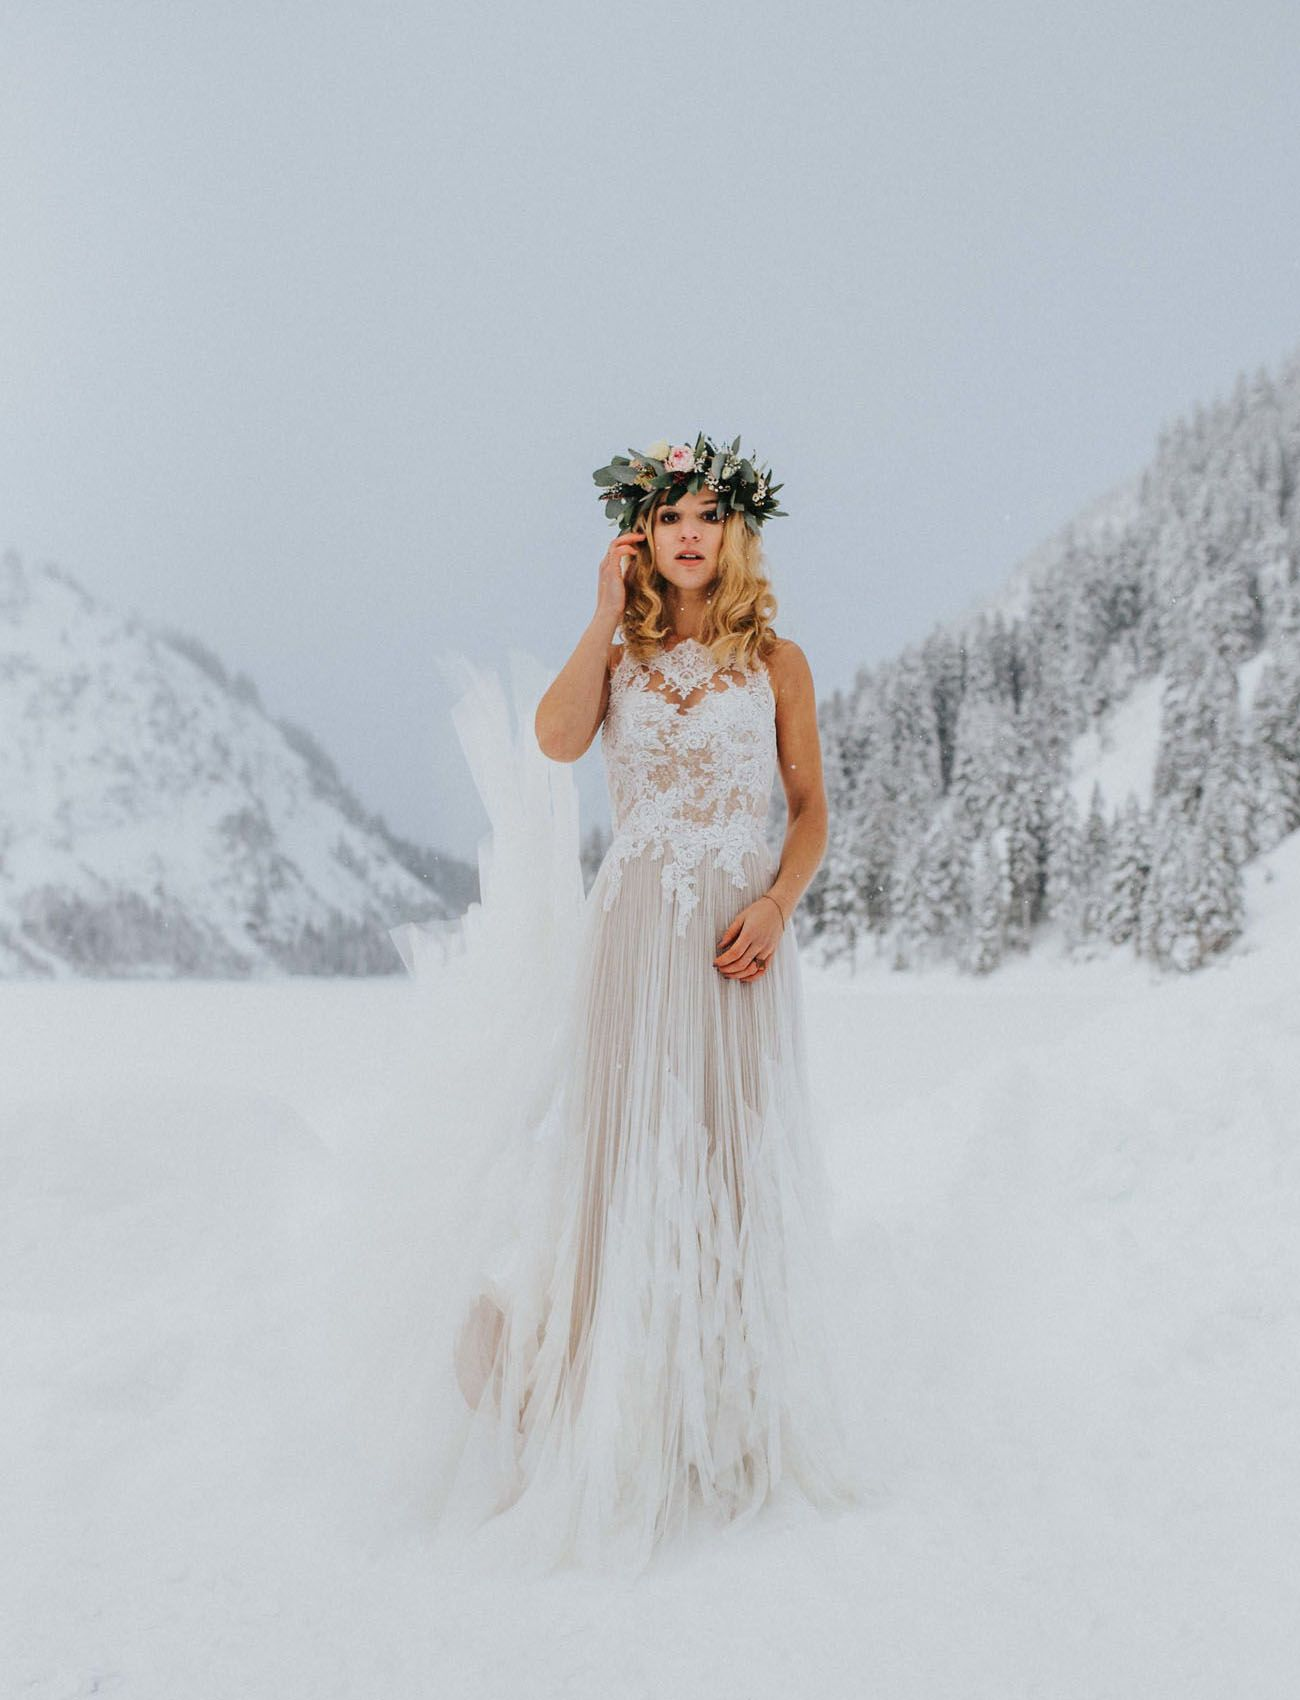 Winter White Wedding in the Mountains with a Twist... Alpacas ...